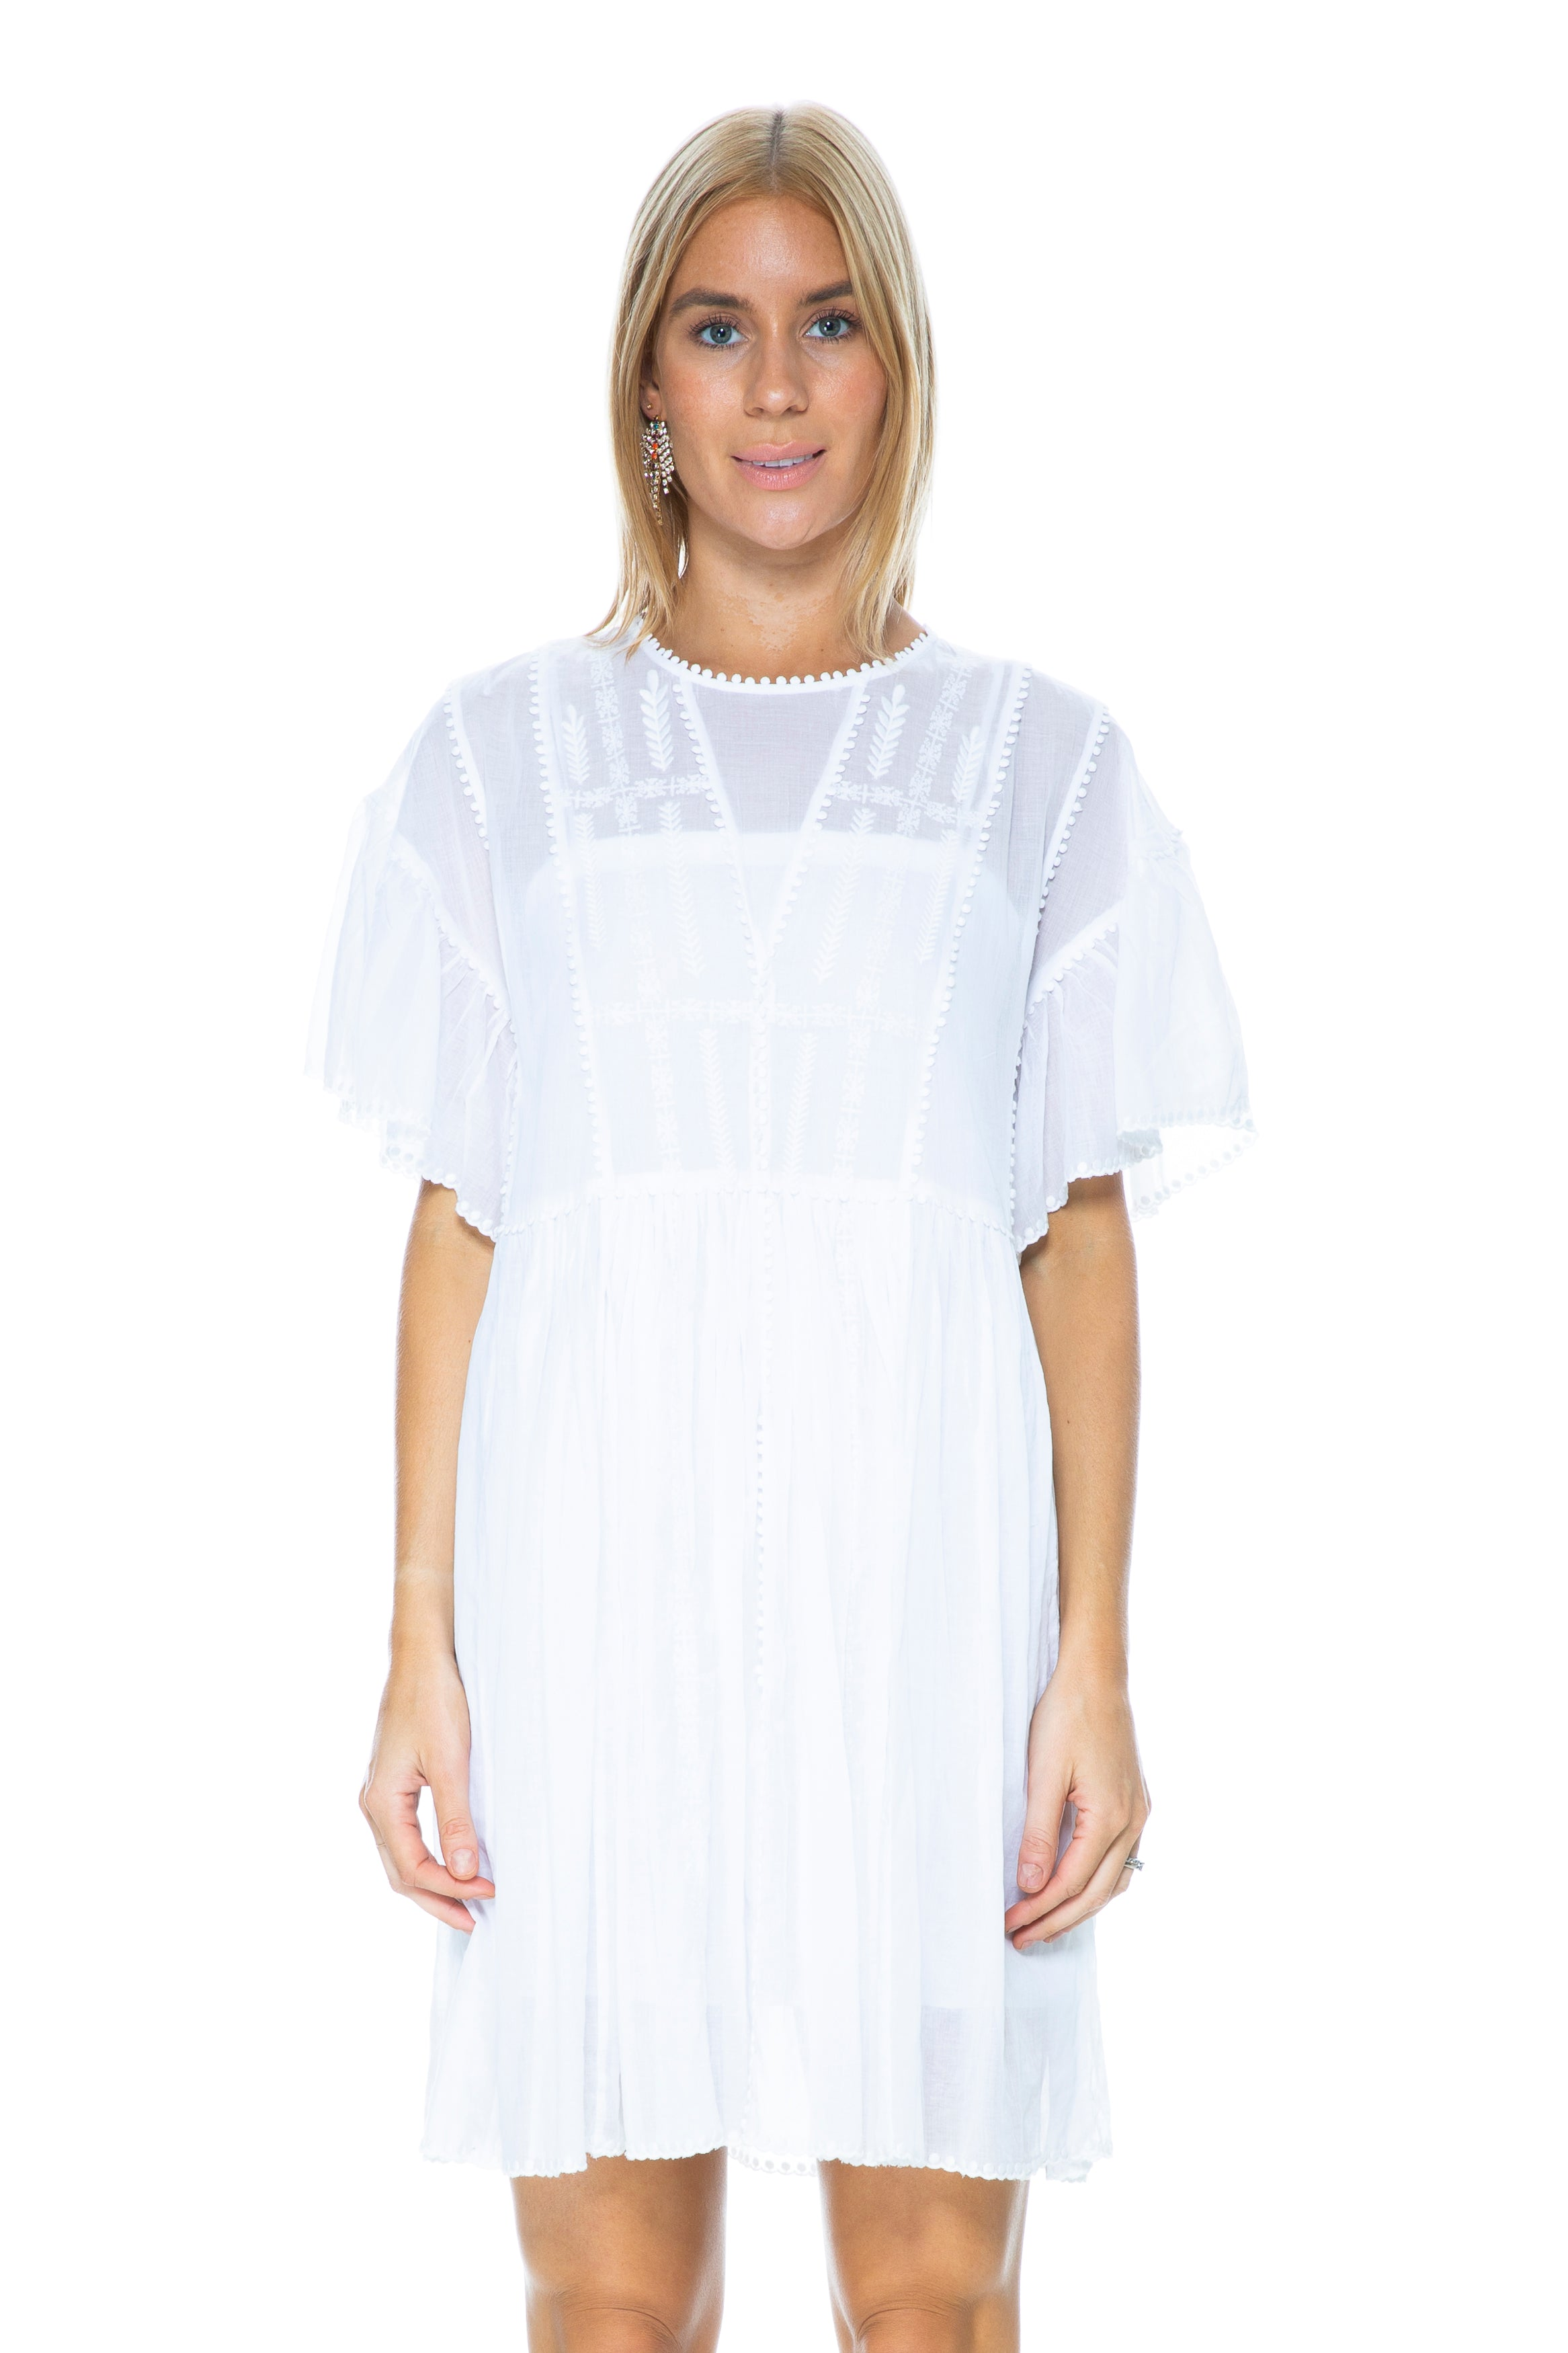 c5036f0e3a Isabel Marant ANNAELLE DRESS WHITE – THE STYLE SET